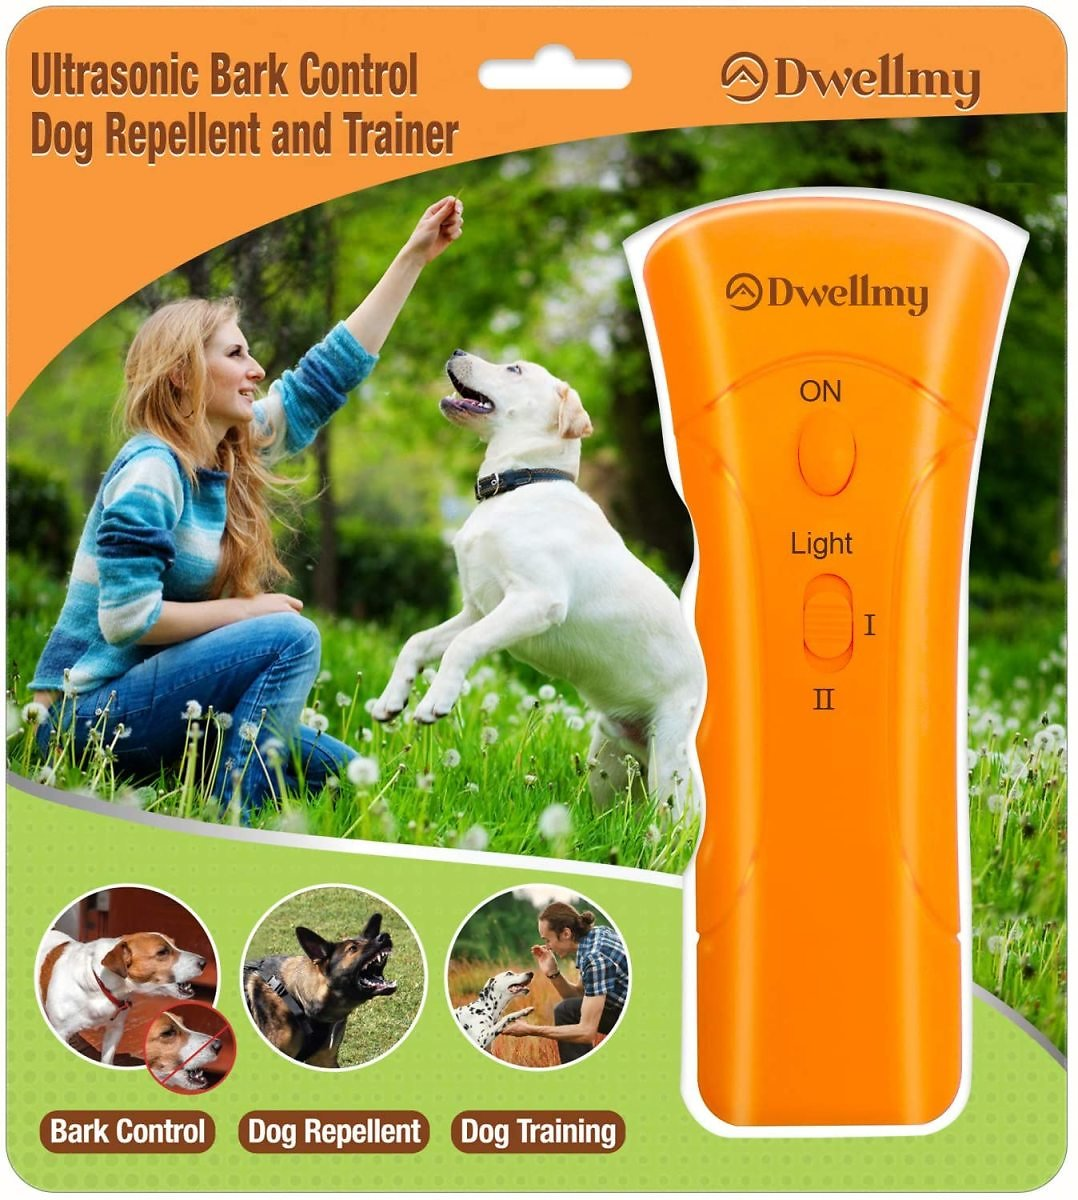 30% Off Ultrasonic Dog Trainer and Barking Control with LED Flashlight